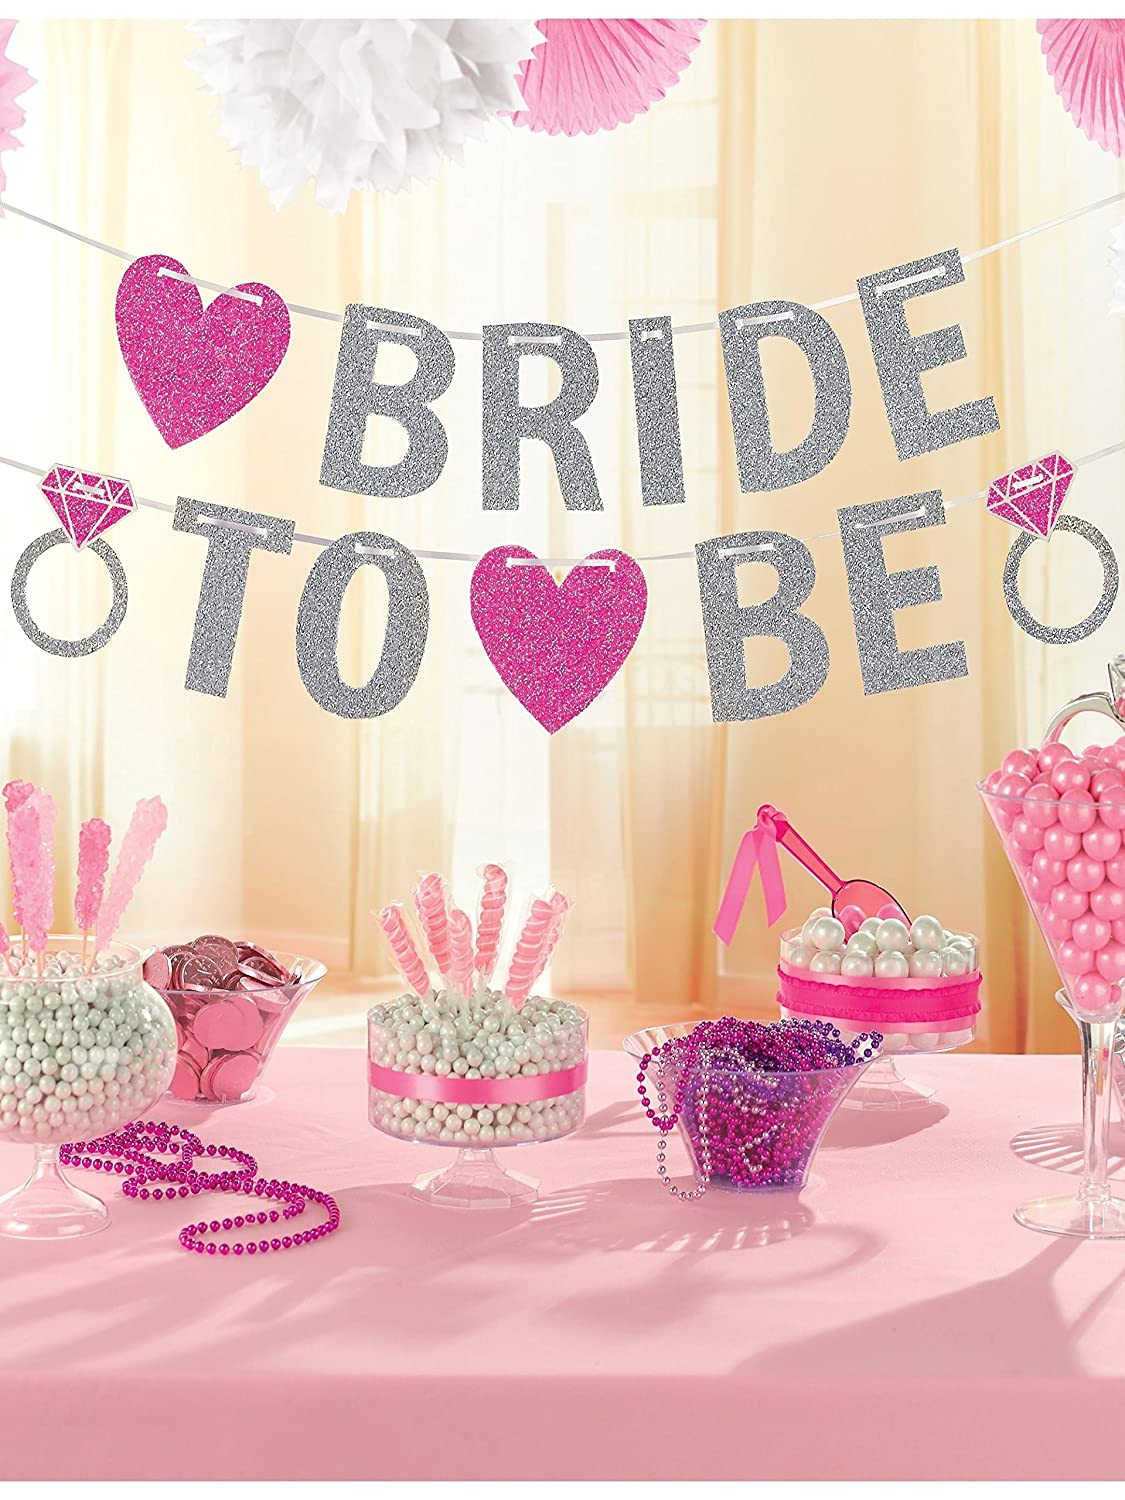 Amscan 9900536 3.5 m Hen Party Bride to Be Glitter Banner Amscan Internatinal Ltd